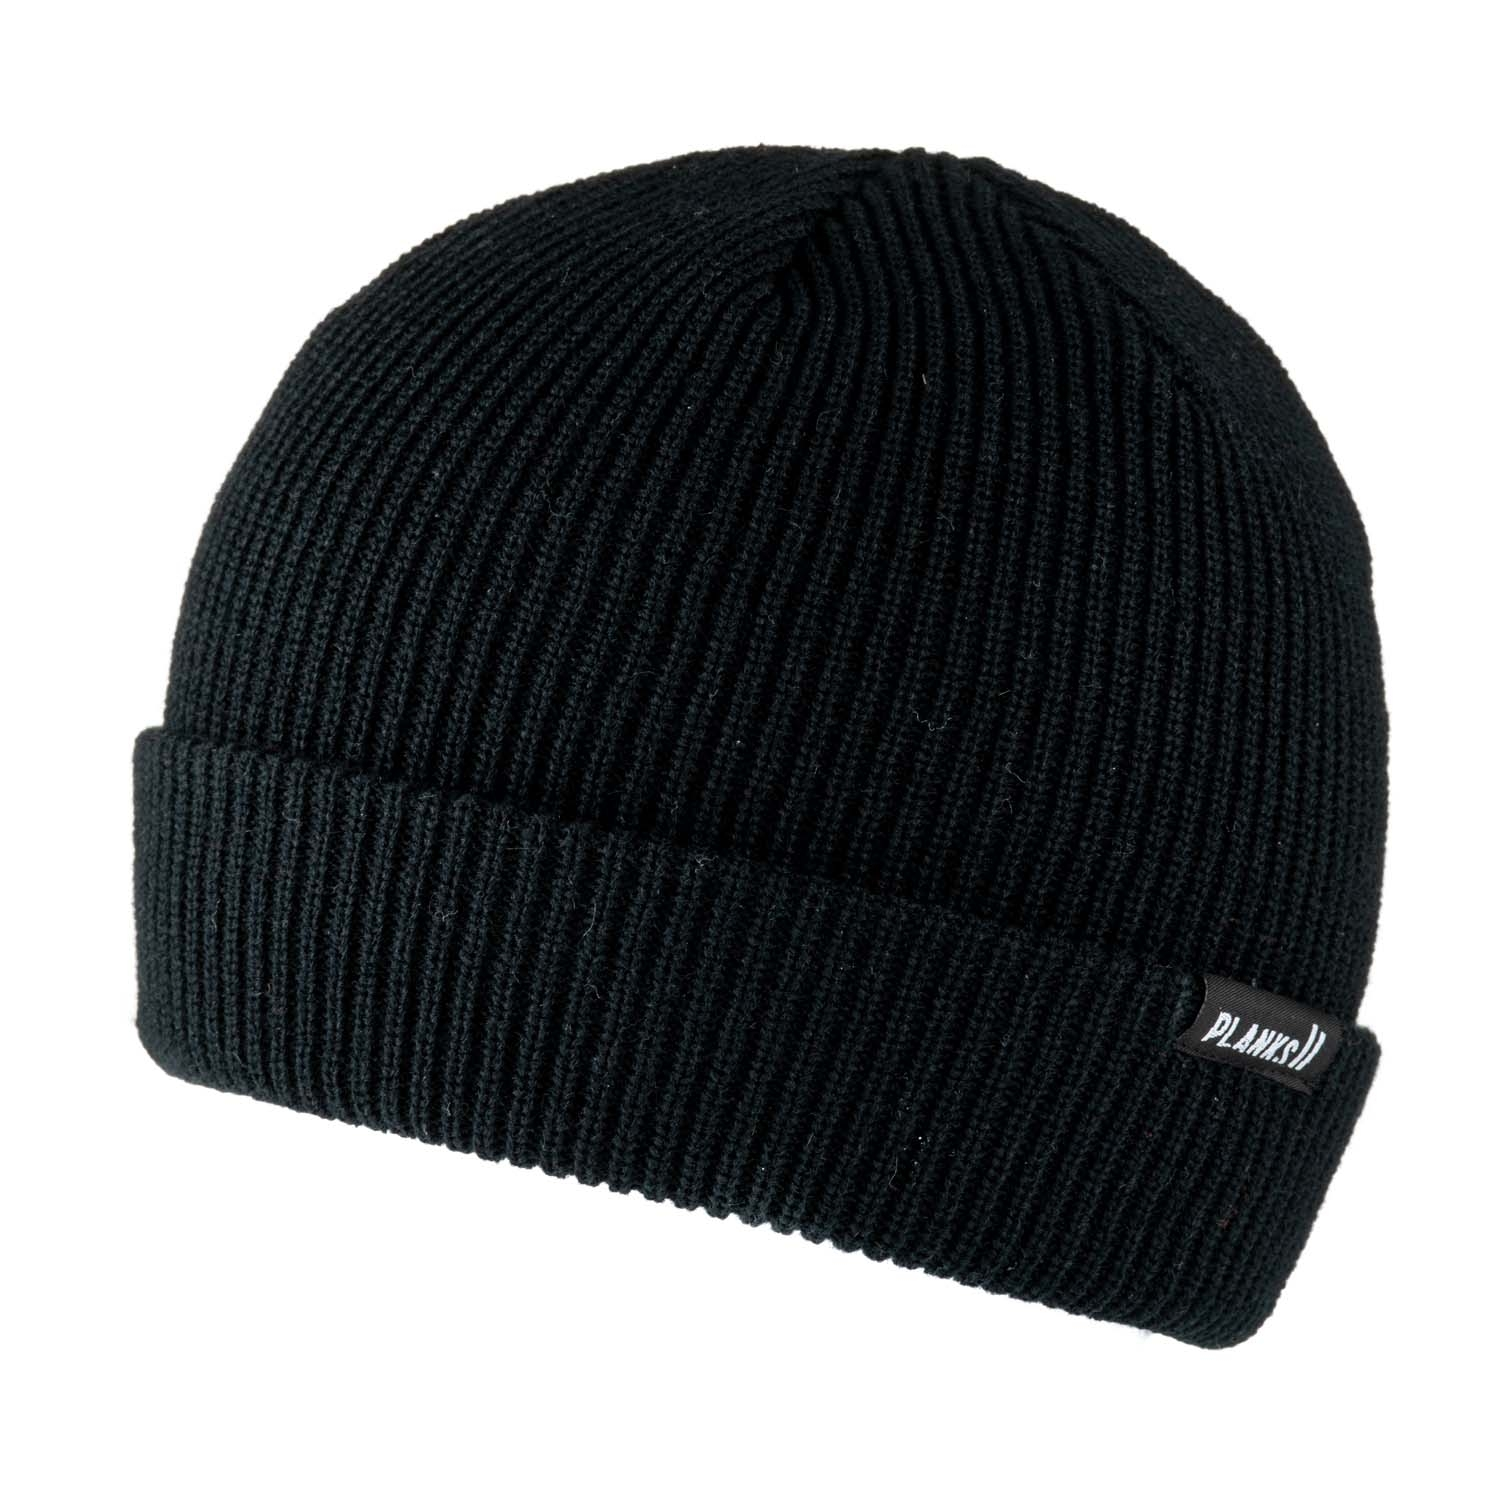 Planks Essentials Beanie Black 2020